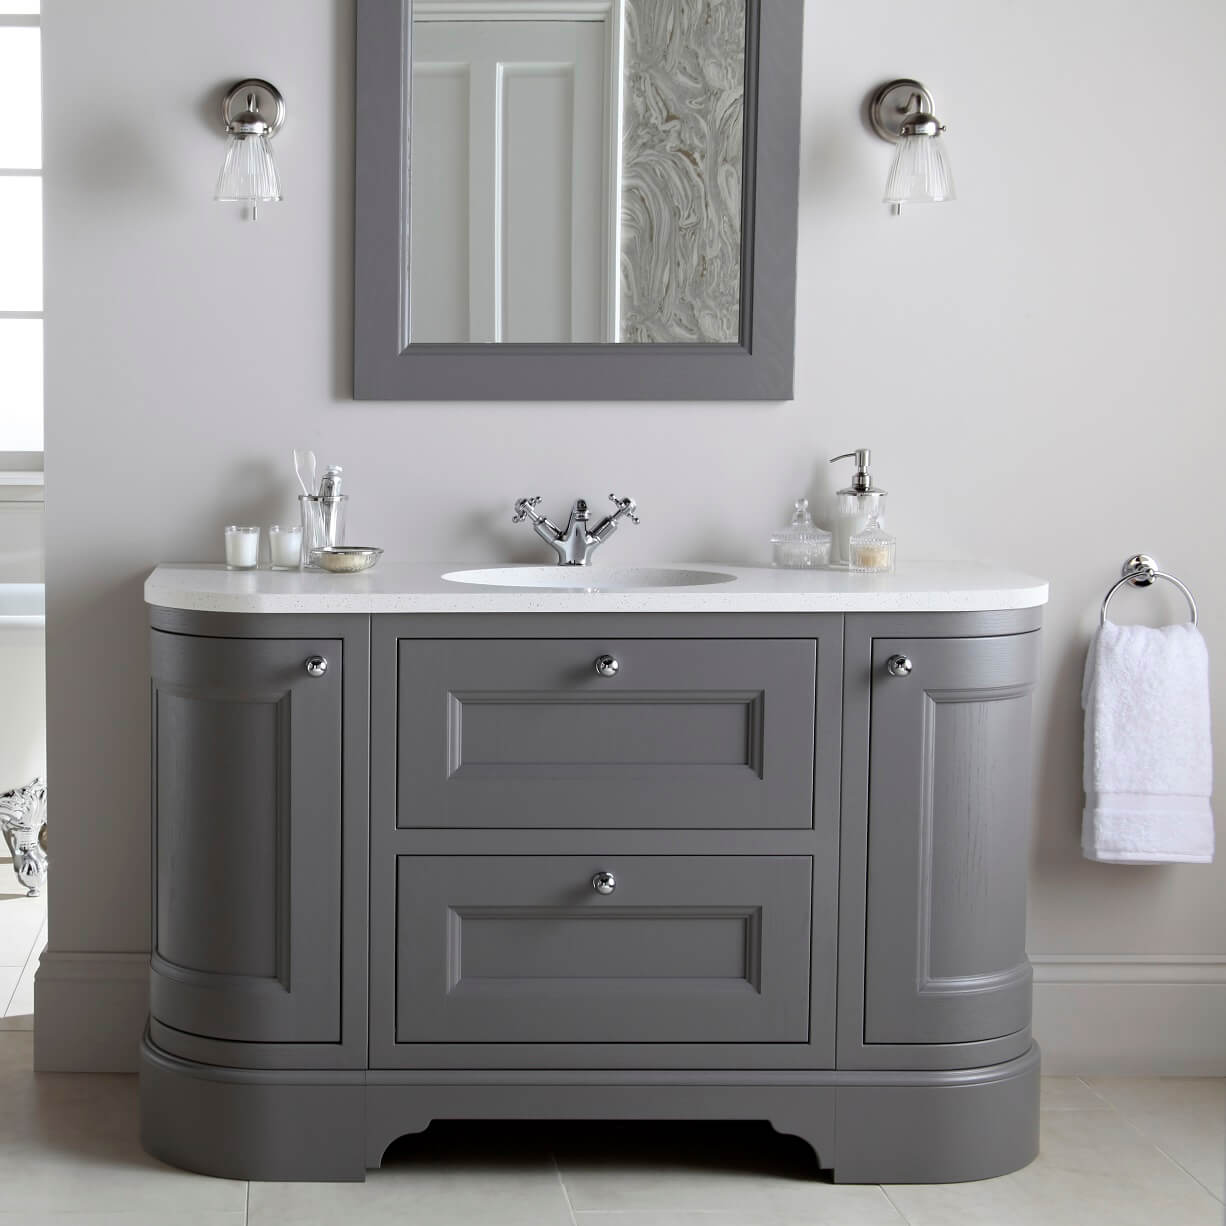 Burbidge Tetbury 1340mm Curved Vanity Unit & Worktop With Integral Basin